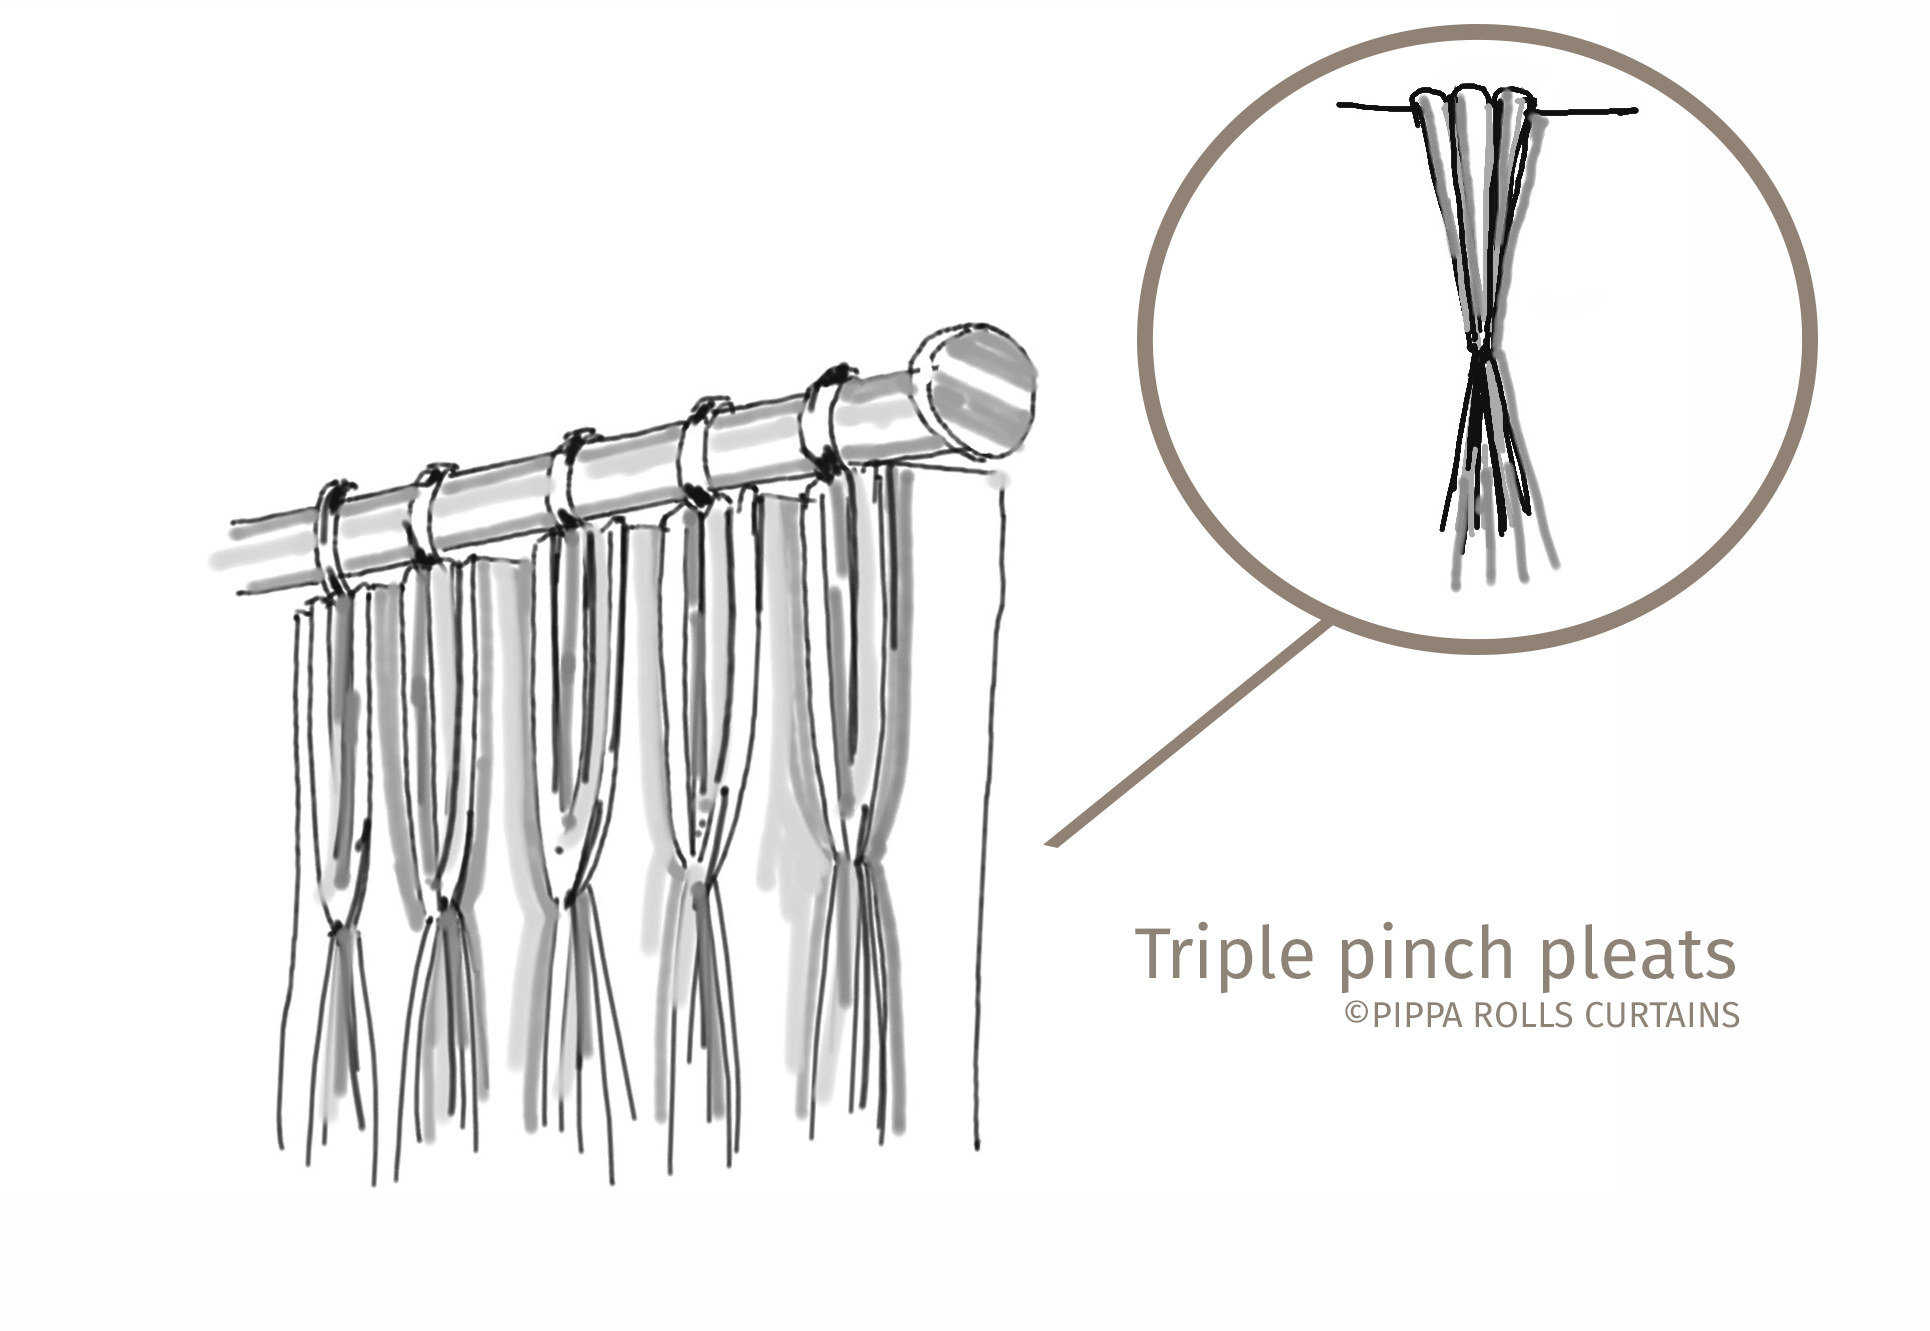 Triple pleats jpeg.jpg